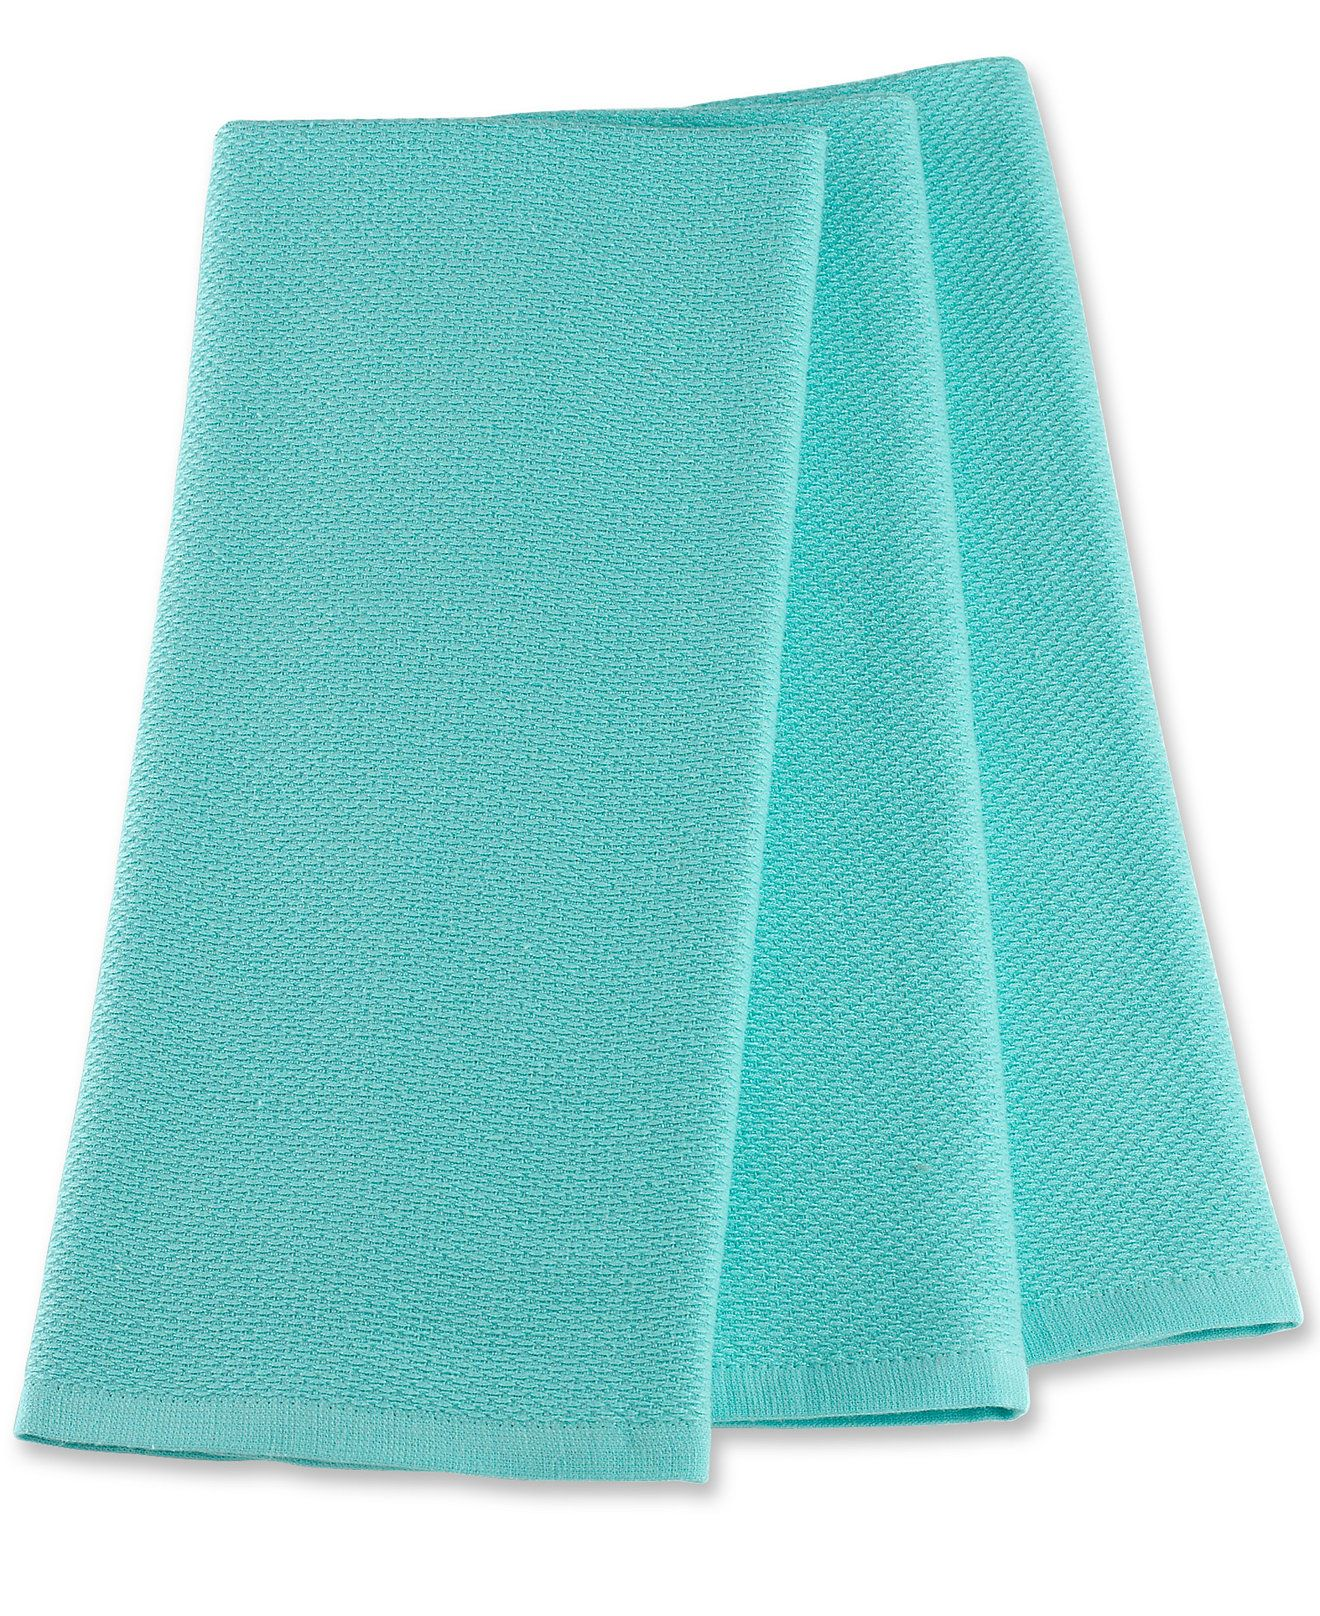 martha stewart collection pique kitchen towels set of 3 aqua